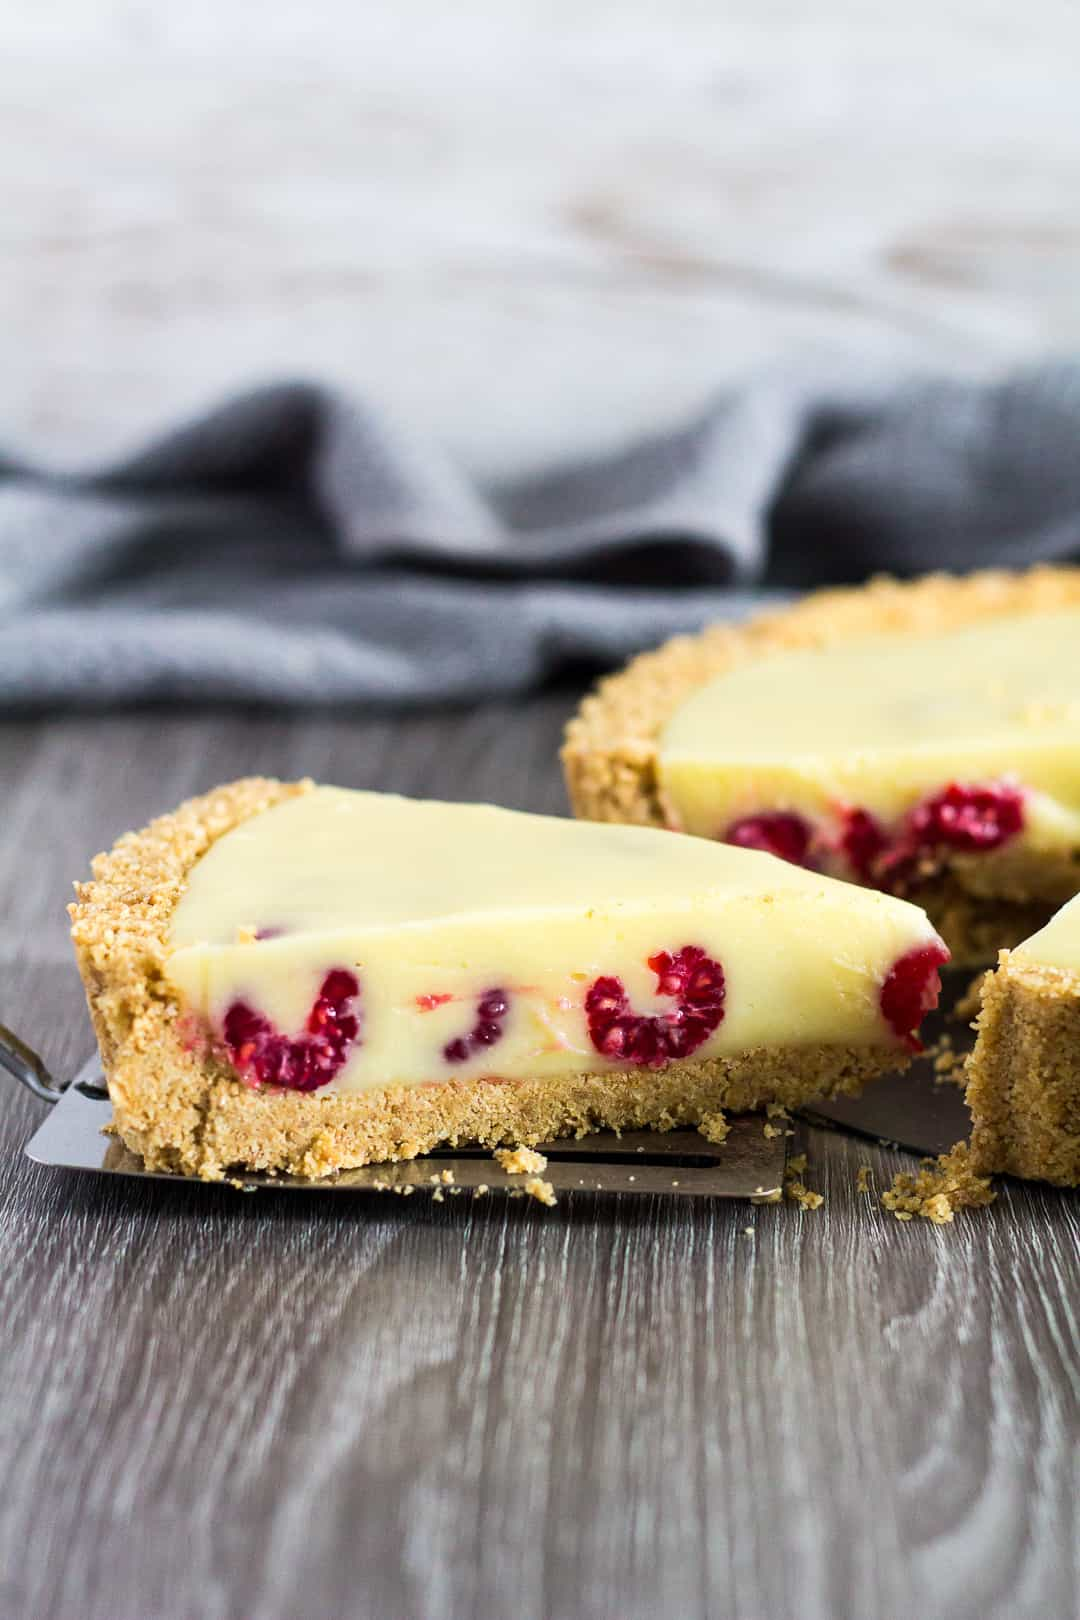 A slice being taken from White Chocolate Raspberry Tart.